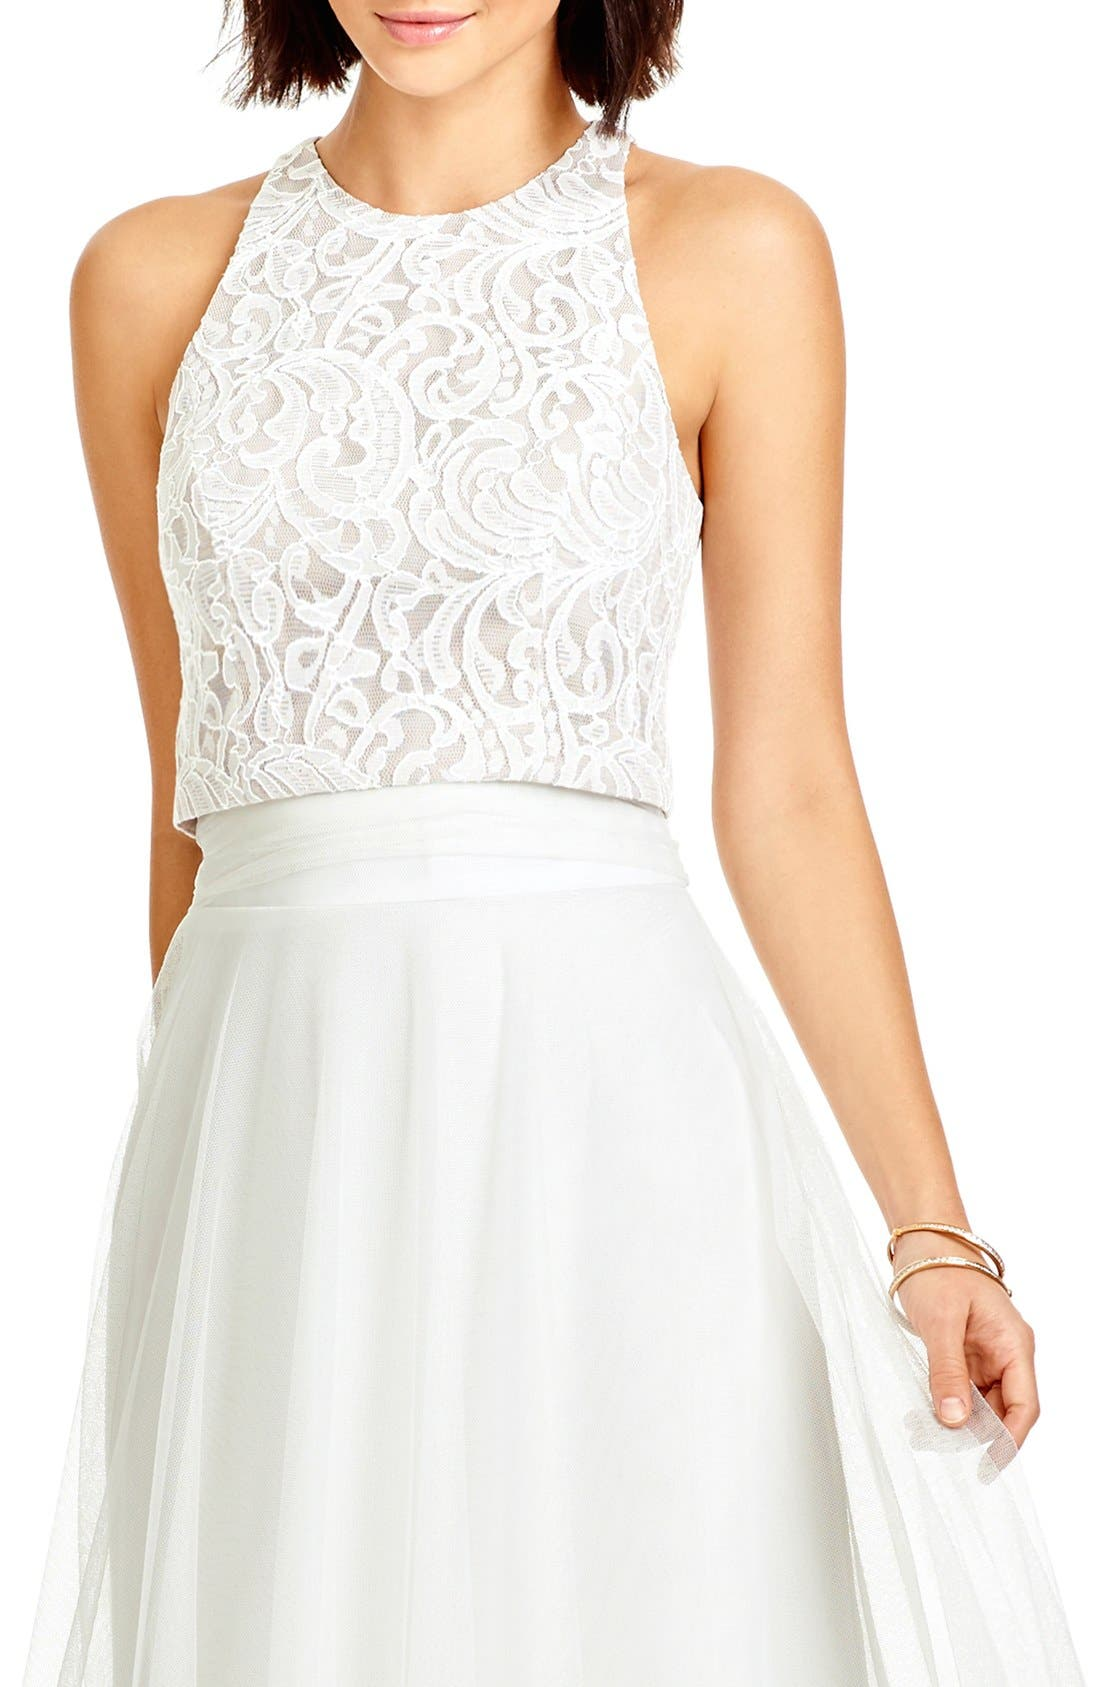 Lace Halter Style Crop Top,                             Main thumbnail 1, color,                             IVORY LACE/ TOPAZ/ IVORY